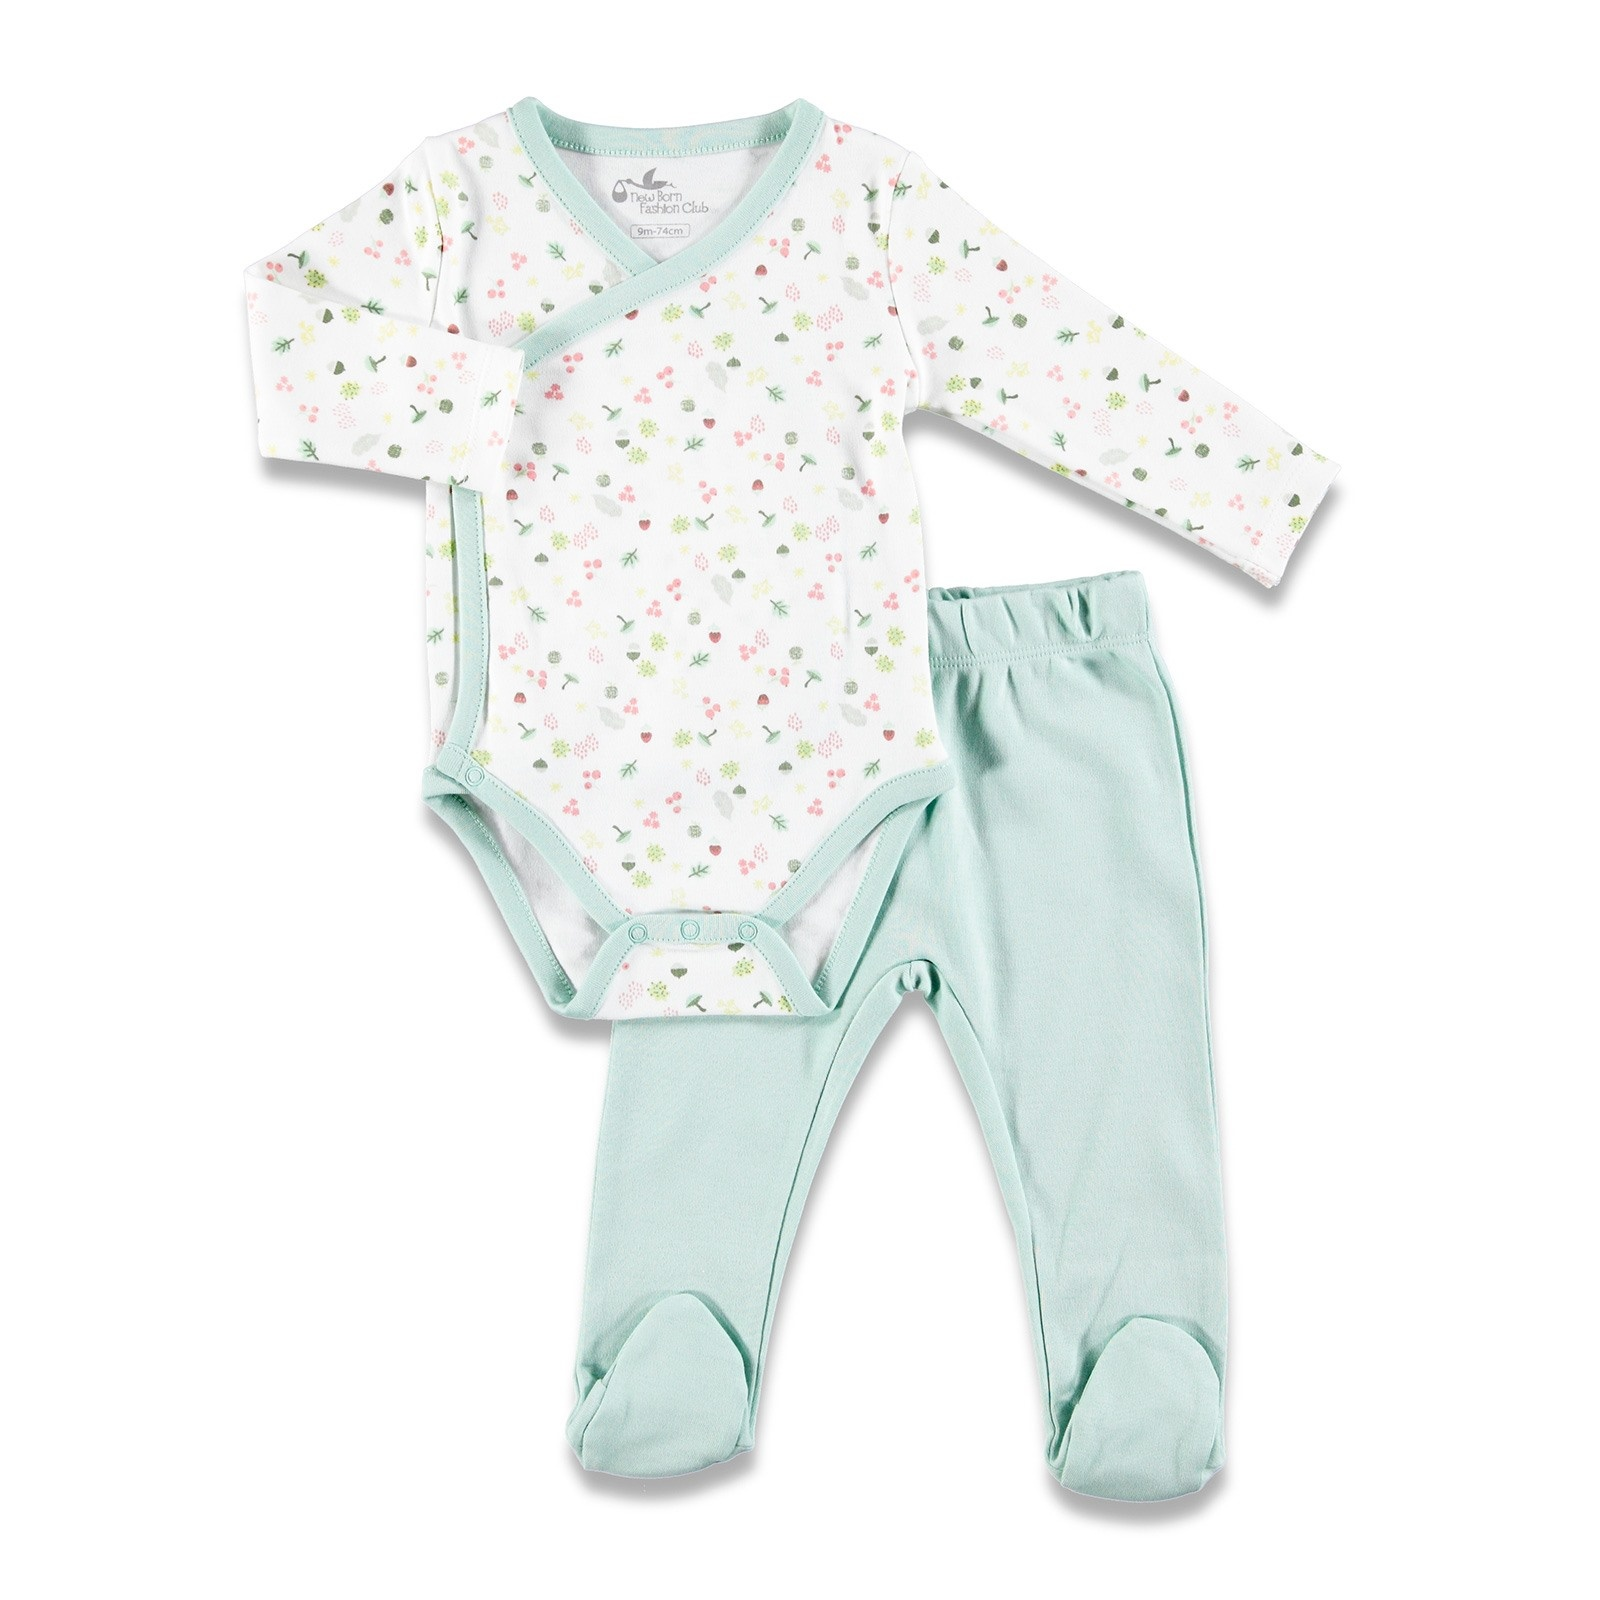 Ebebek Newborn Fashion Club Magical Forest Baby Bodysuits Footed Pants